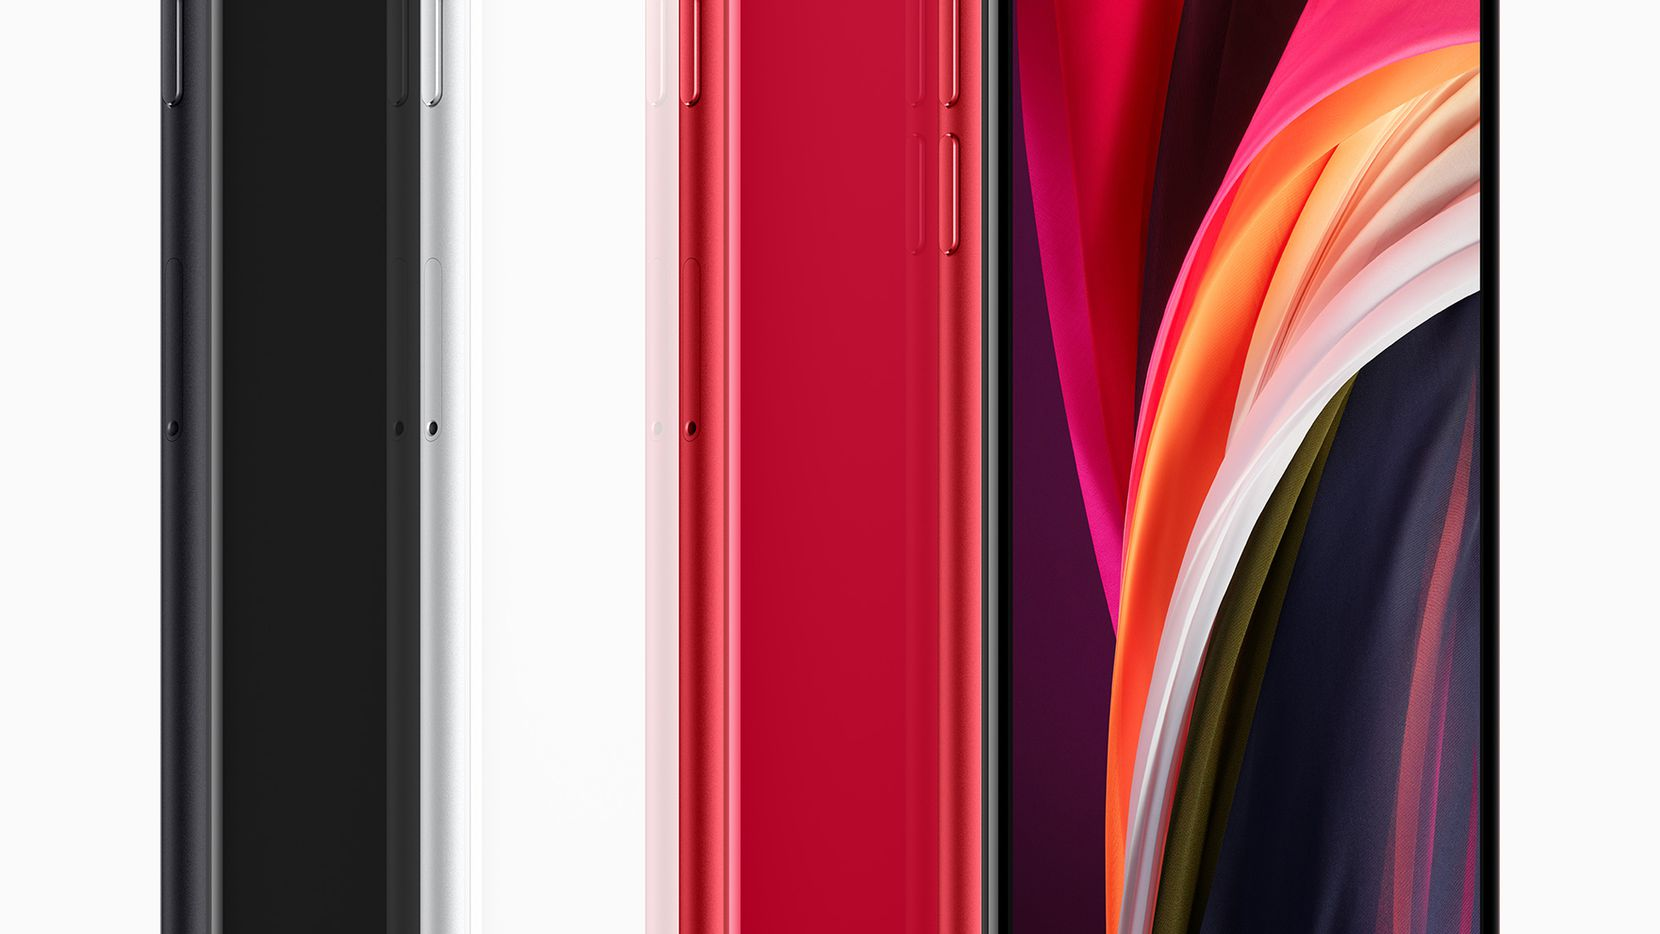 Apple's second generation iPhone SE comes in black, white and red.